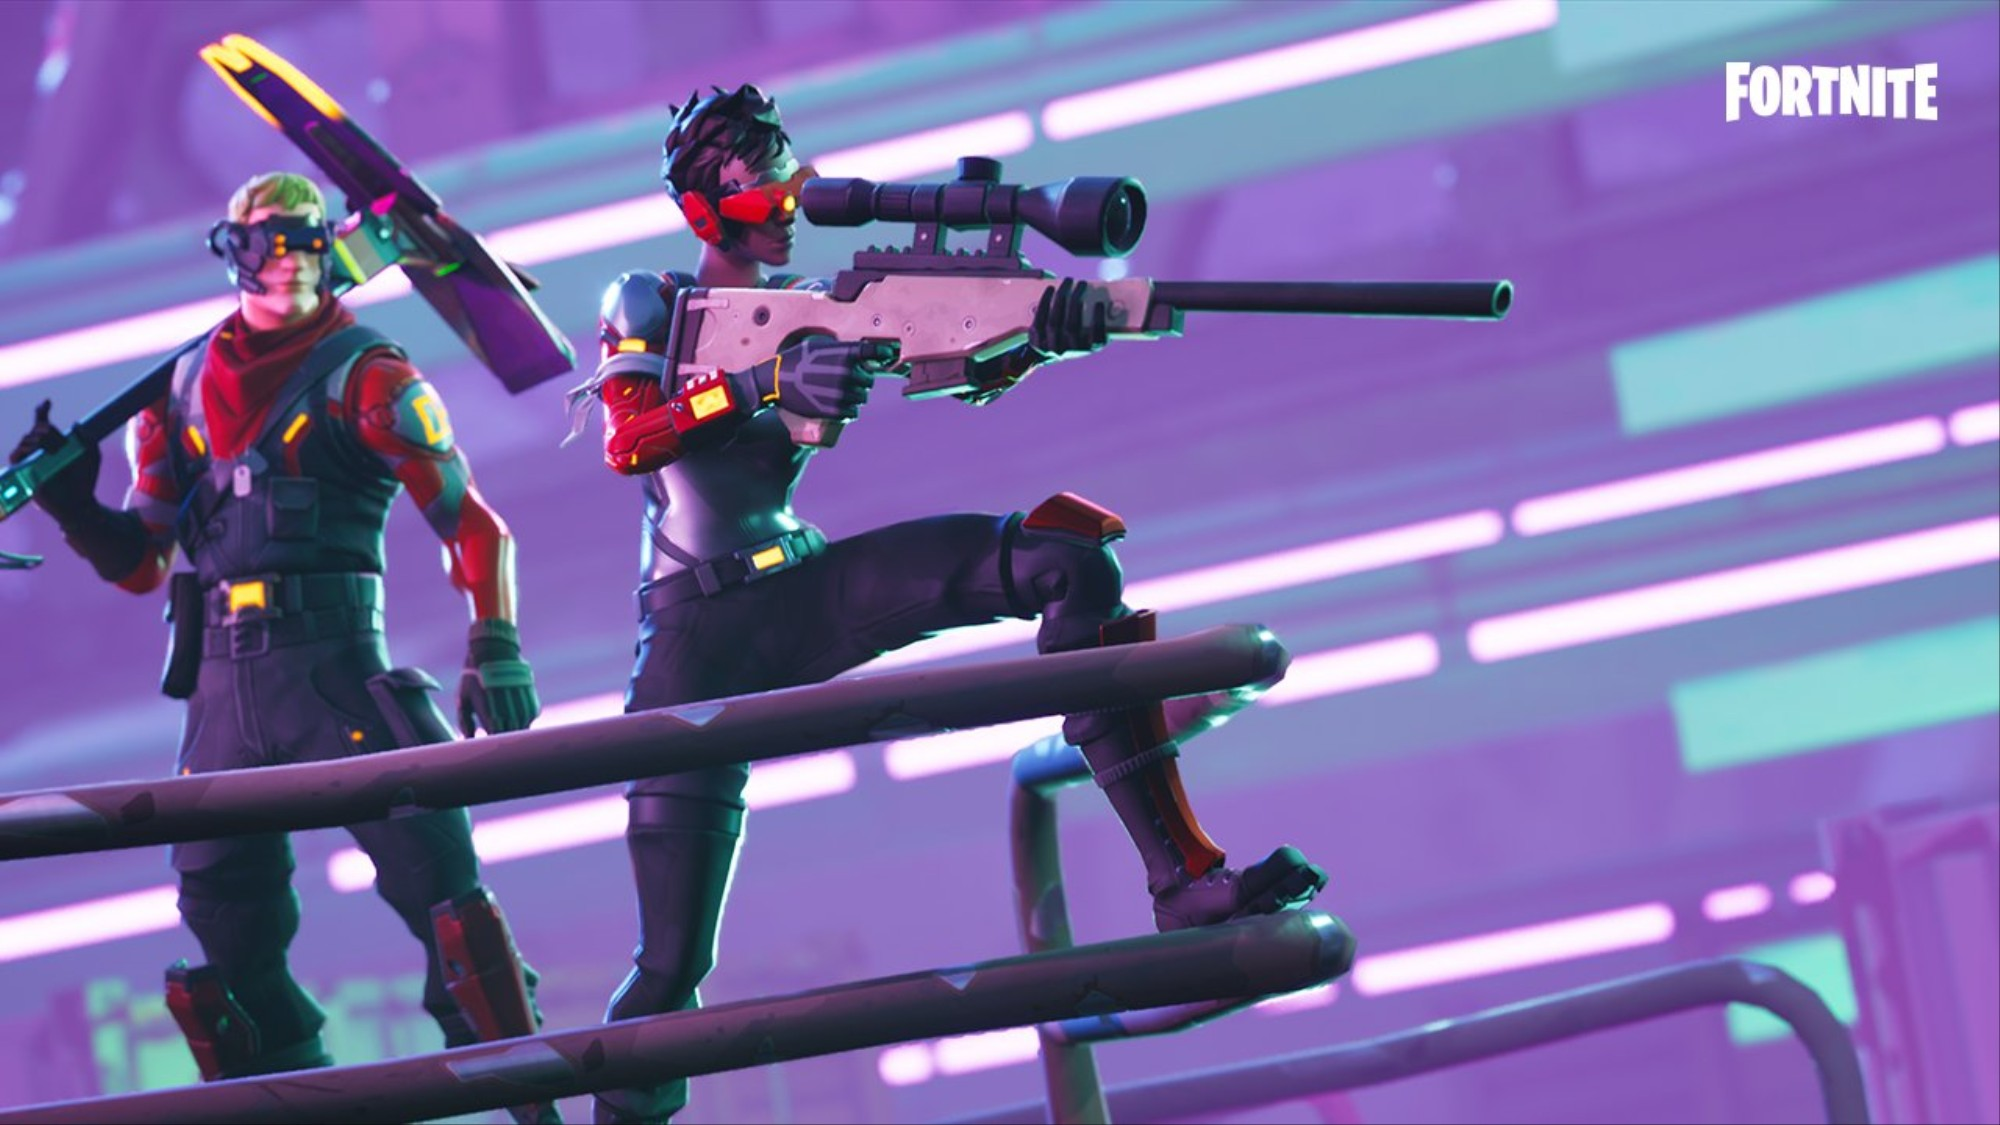 Students Are Using VPNs to Play 'Fortnite' on School Wi-Fi